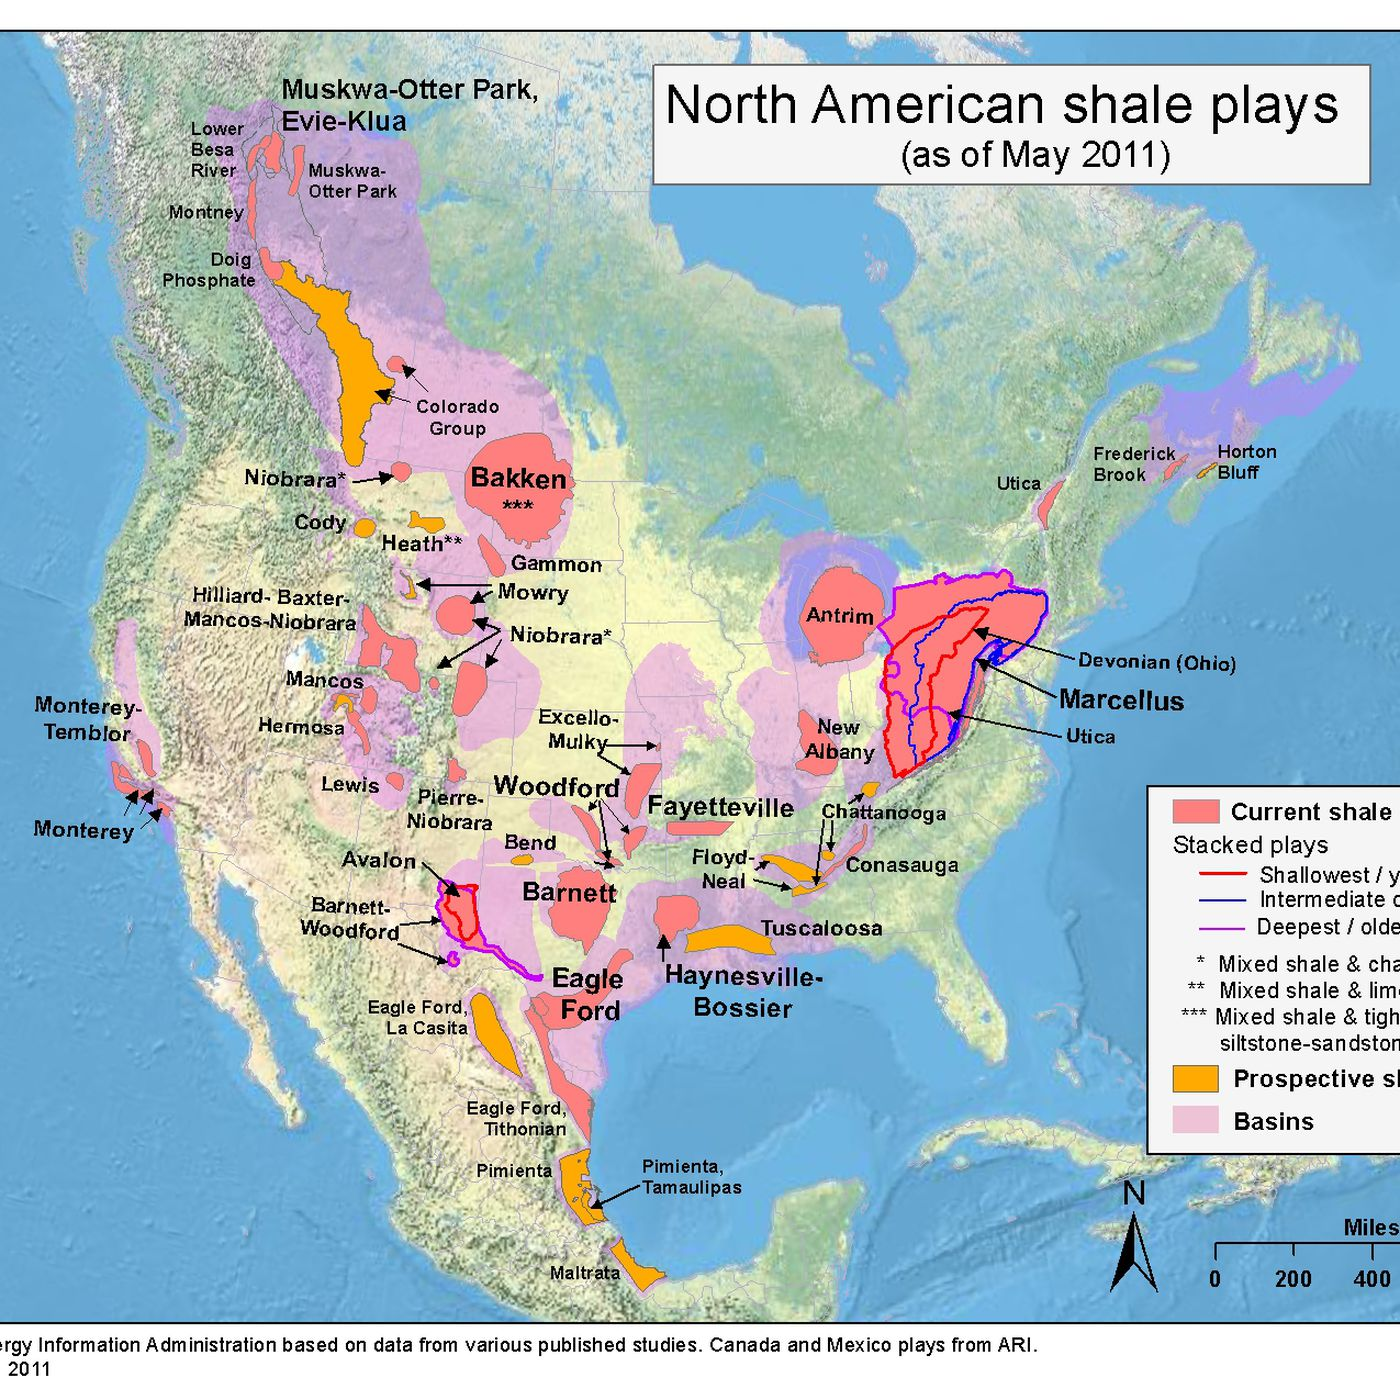 Fracking, explained - Vox on marcellus formation, oil shale in morocco, montana oil drilling map, bituminous shale, oil shale in israel, oil shale gas, oil shale economics, oil well israel, bituminous coal, oil wells map of new york, town of utica ny map, oil deposits in united states, cement map, us unconventional oil plays map, stuart oil shale project, chert map, oil well map with key, coal map, oil shale in estonia,